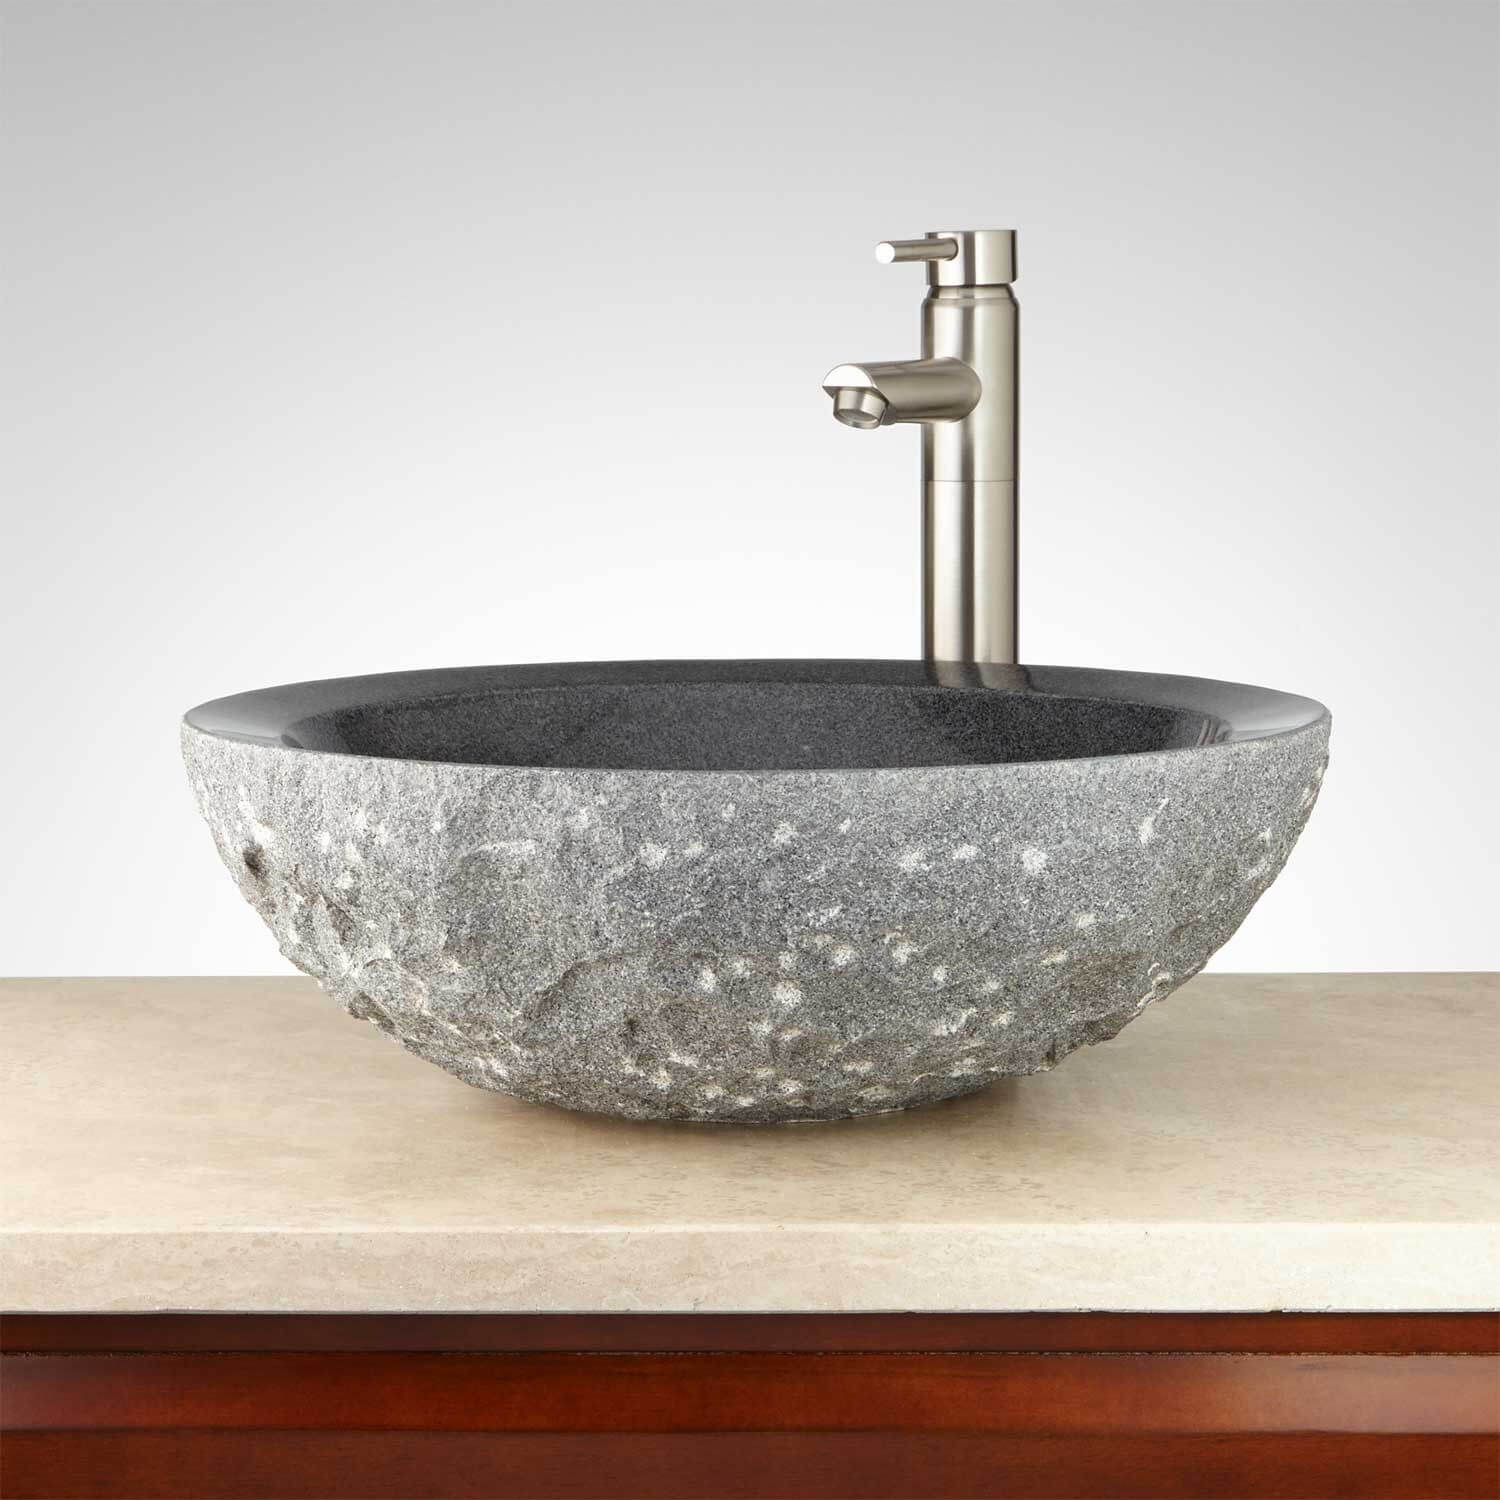 round kitchen sink hide trash can chiseled granite vessel natural stone creations